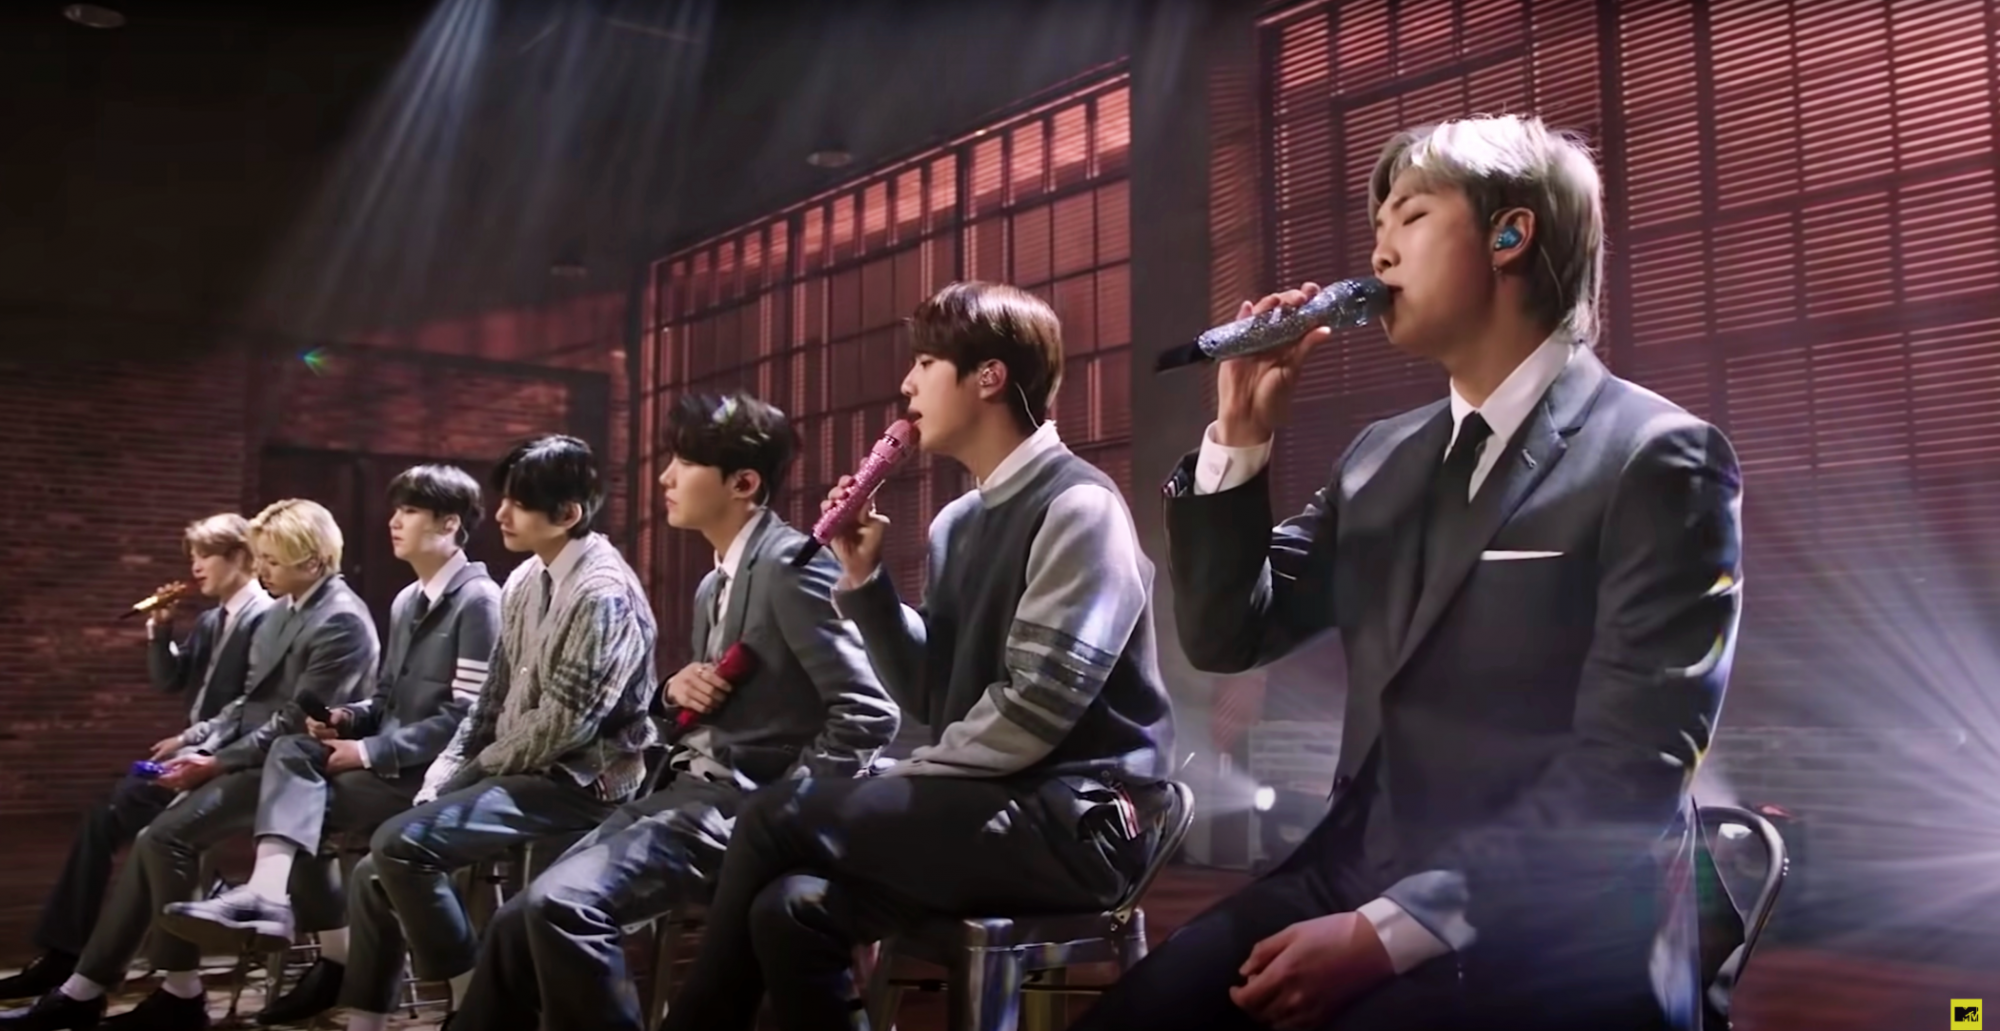 BTS performs 'Fix You' by Coldplay for MTV Unplugged | Photo: Screencap from Youtube